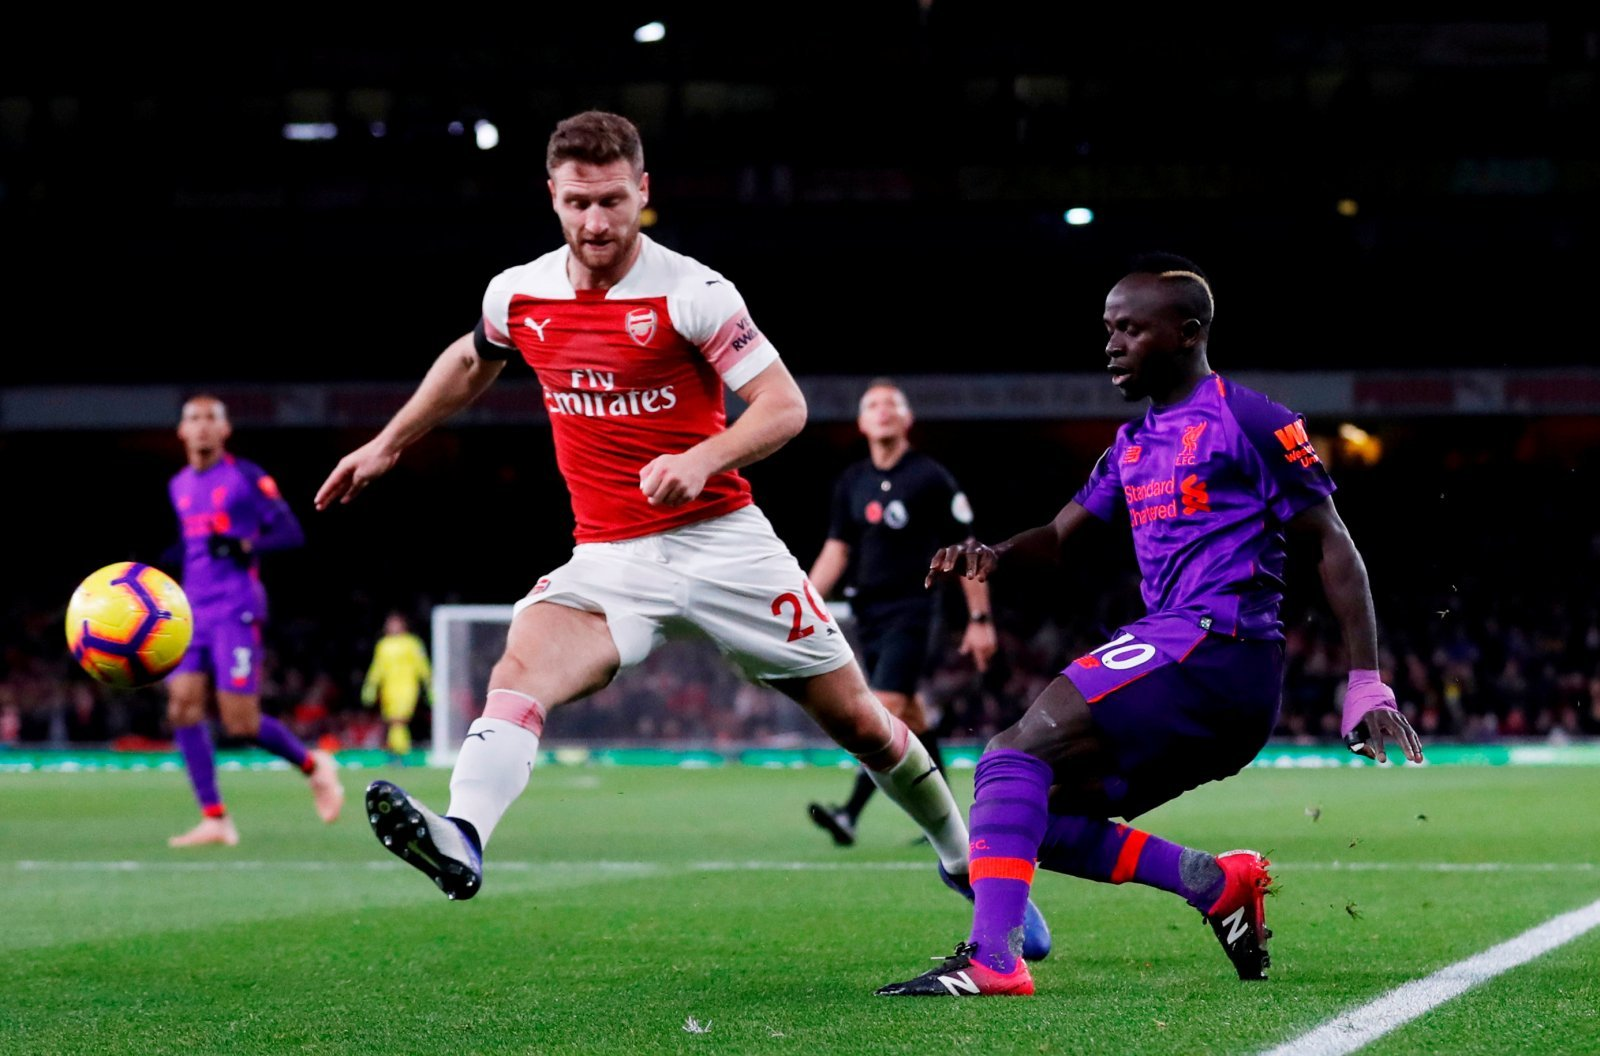 Mustafi really could kick on from here for Unai Emery's Arsenal